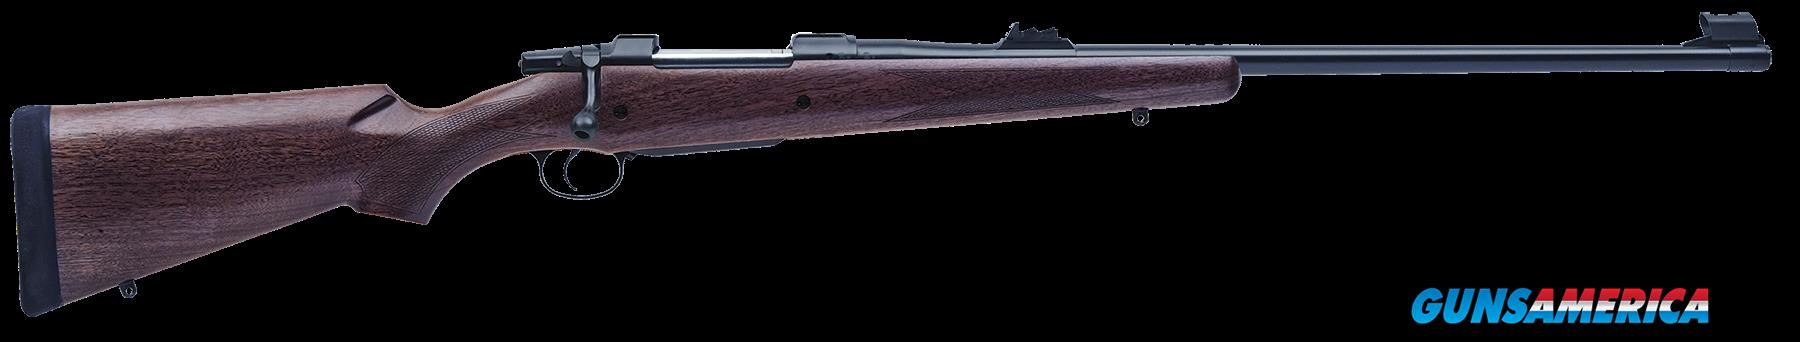 "CZ 04213 CZ 550 American Safari Magnum Bolt 458 Winchester Magnum 25"" 4+1 Walnut Stk Blued  Guns > Rifles > C Misc Rifles"